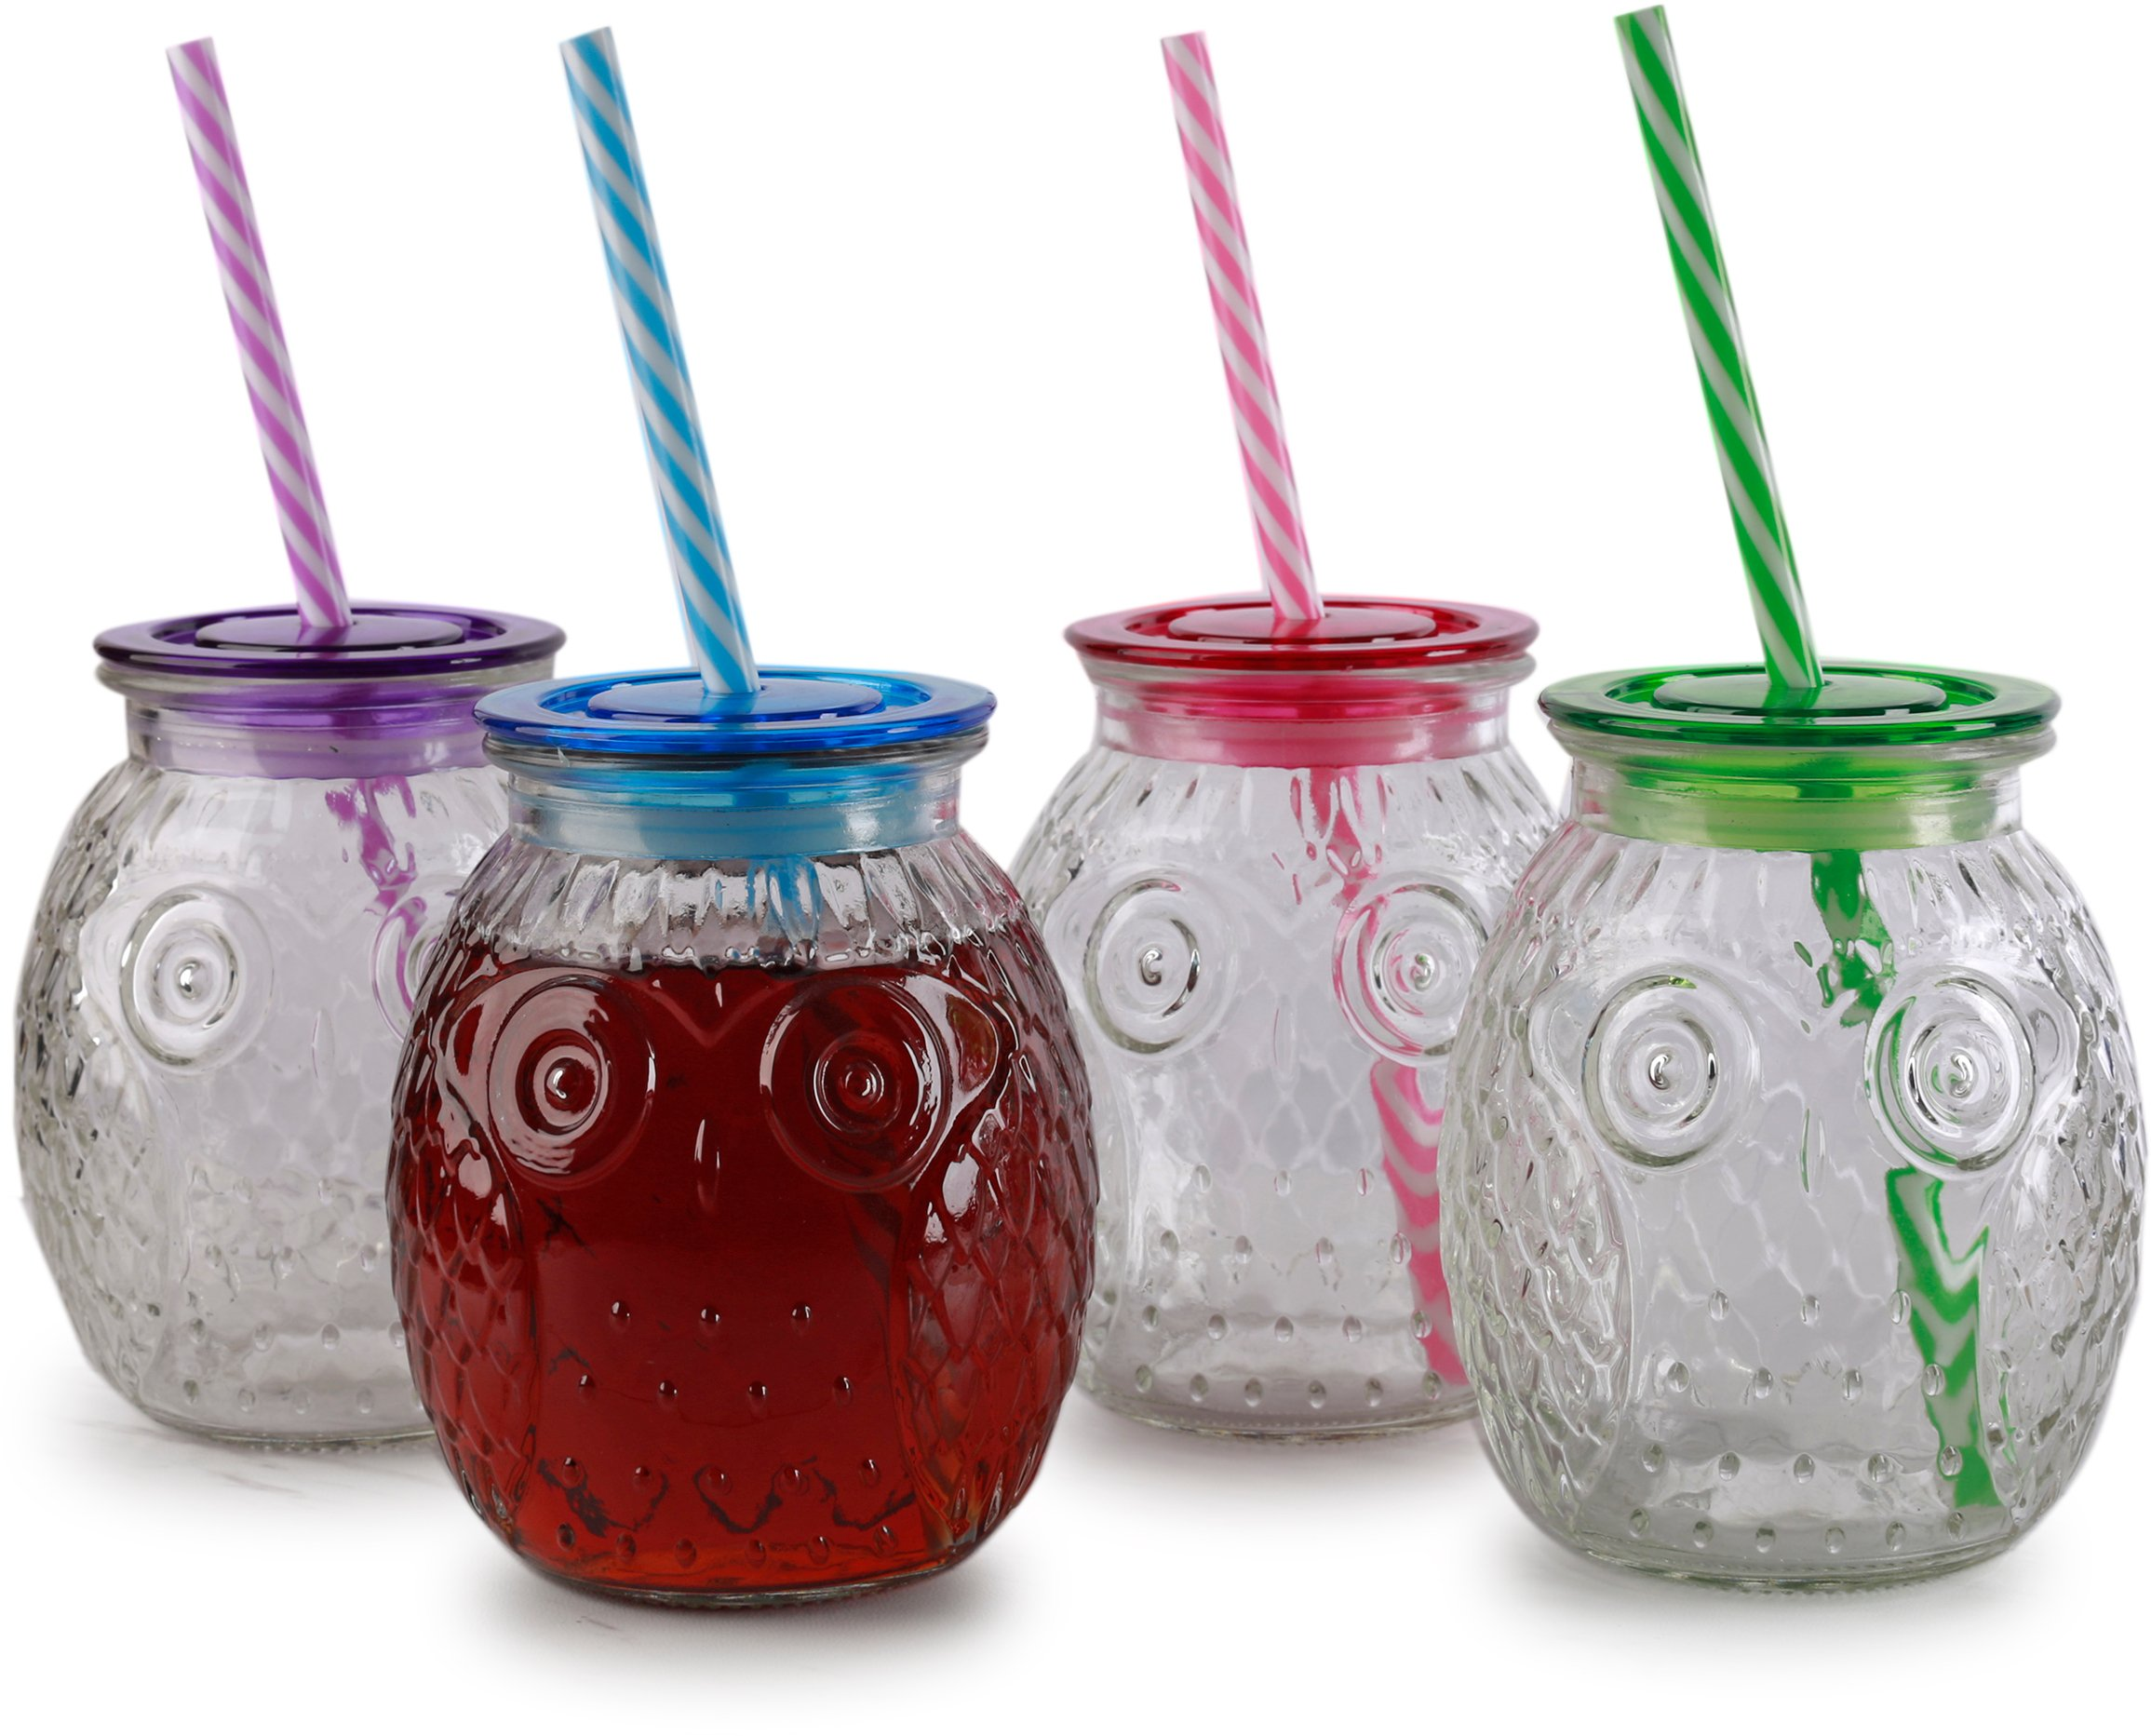 Circleware 69073 Owl Mason Jars Drinking Glasses with Colored Lids and Plastic Straws Set of 4, Glassware for Water Beer and Kitchen & Home Decor Dining Beverage Gifts, 16.2 oz, Multi